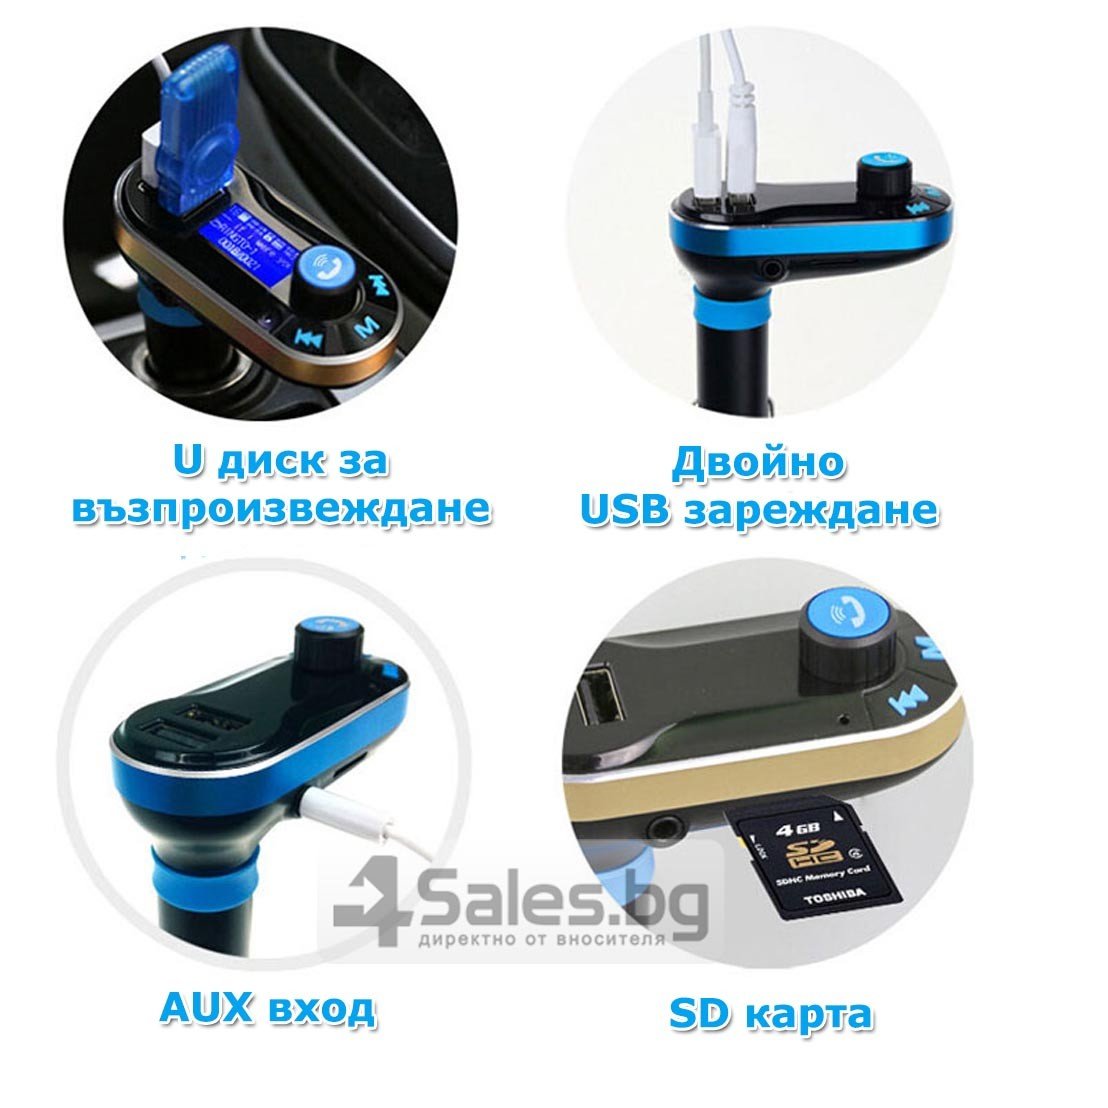 Bluetooth MP3 Player Timloon BT66, 2 USB порта, SD и MMC карта и LED екран HF10 21